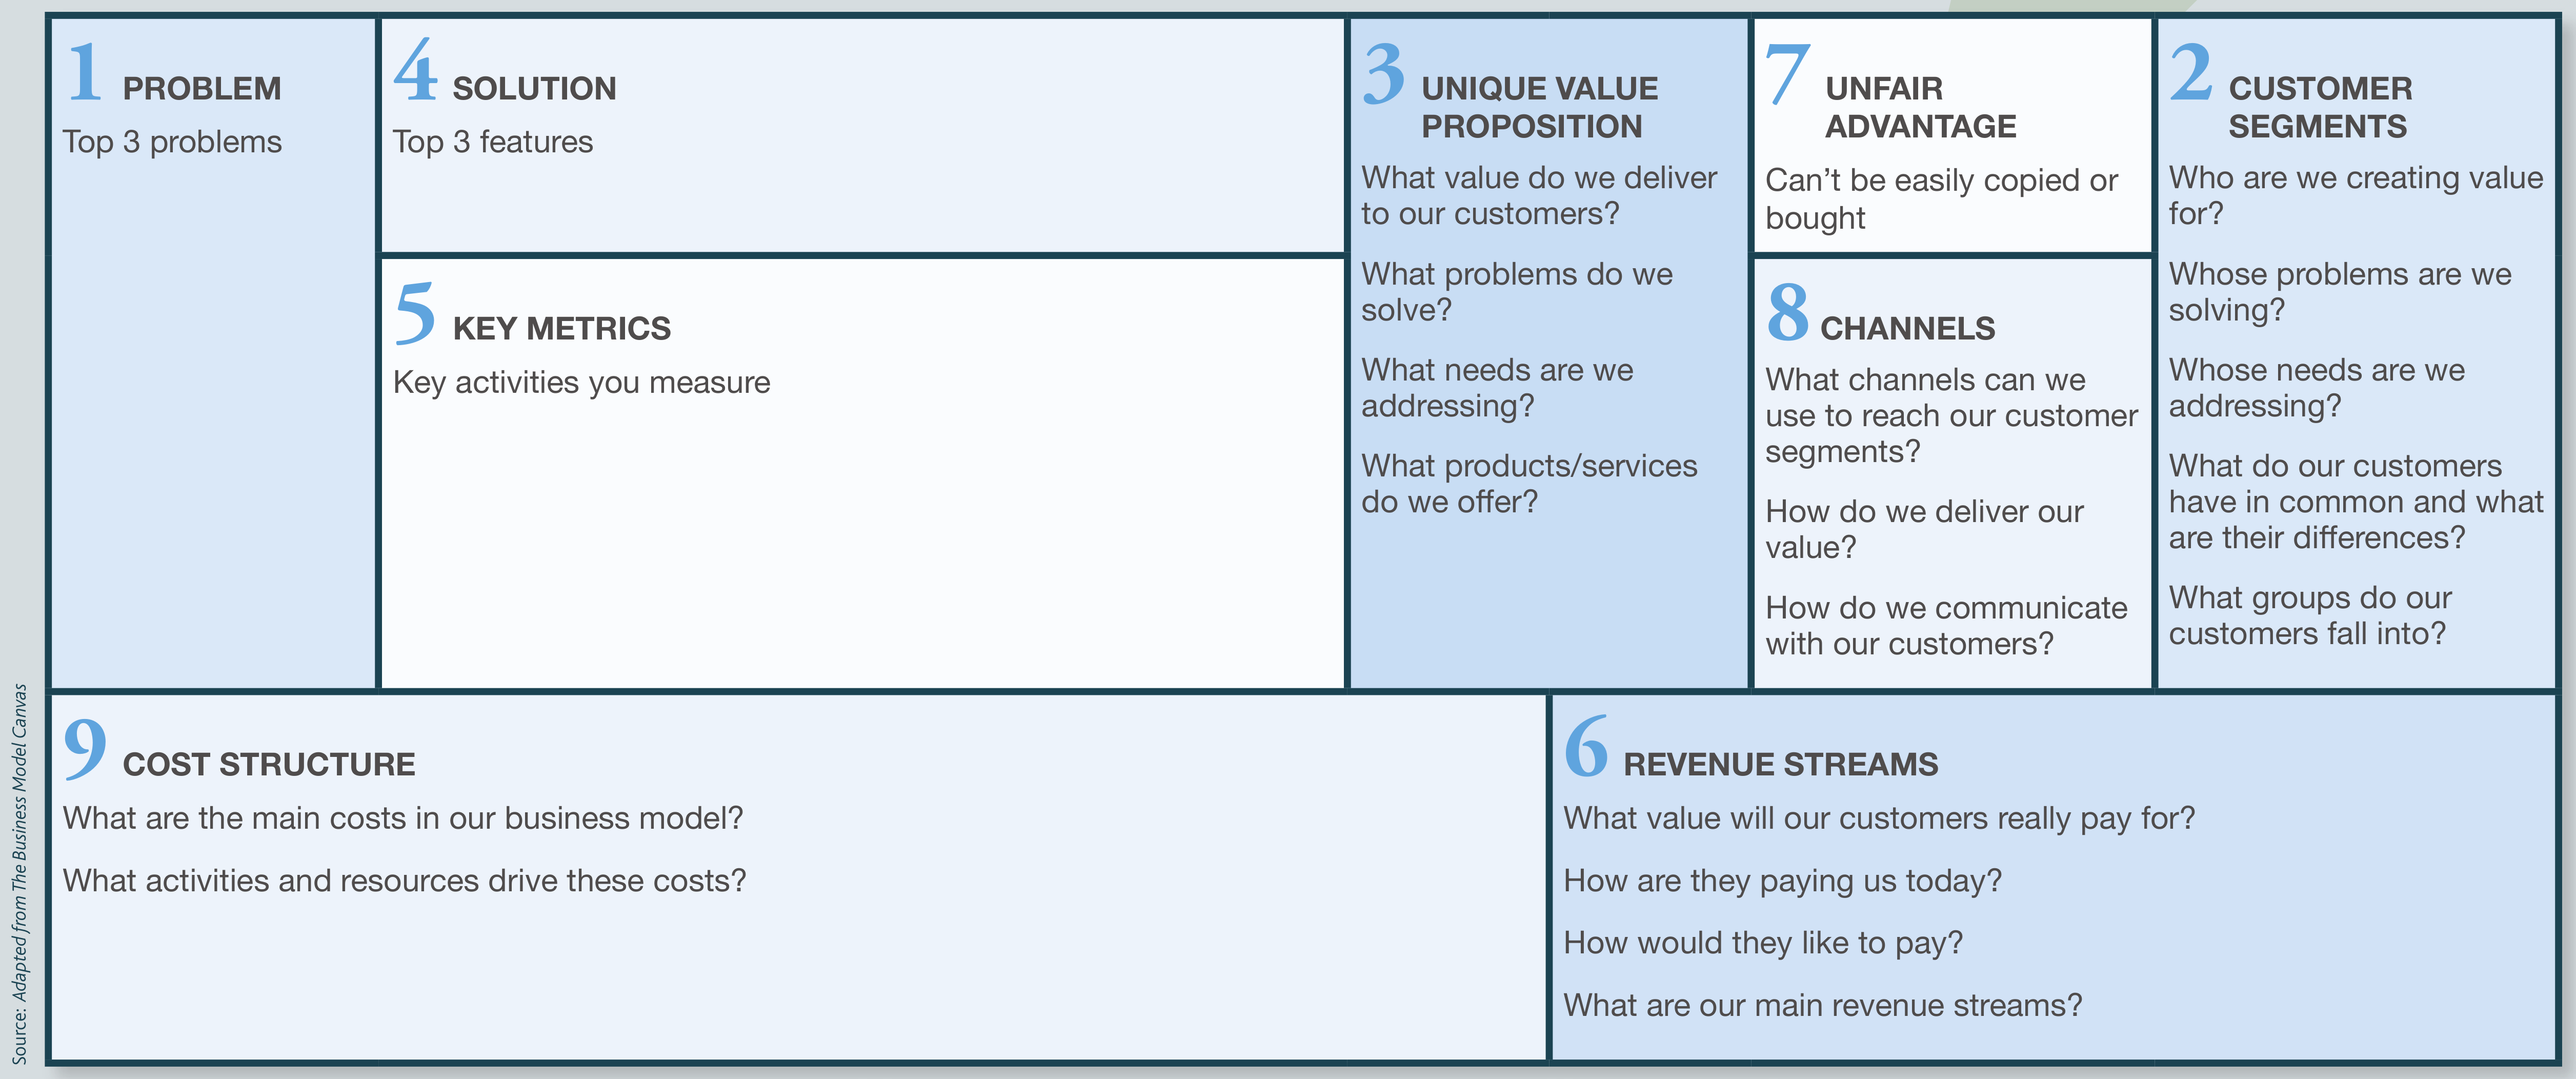 content/images/entrepreneurial-innovation/lean-canvas.png